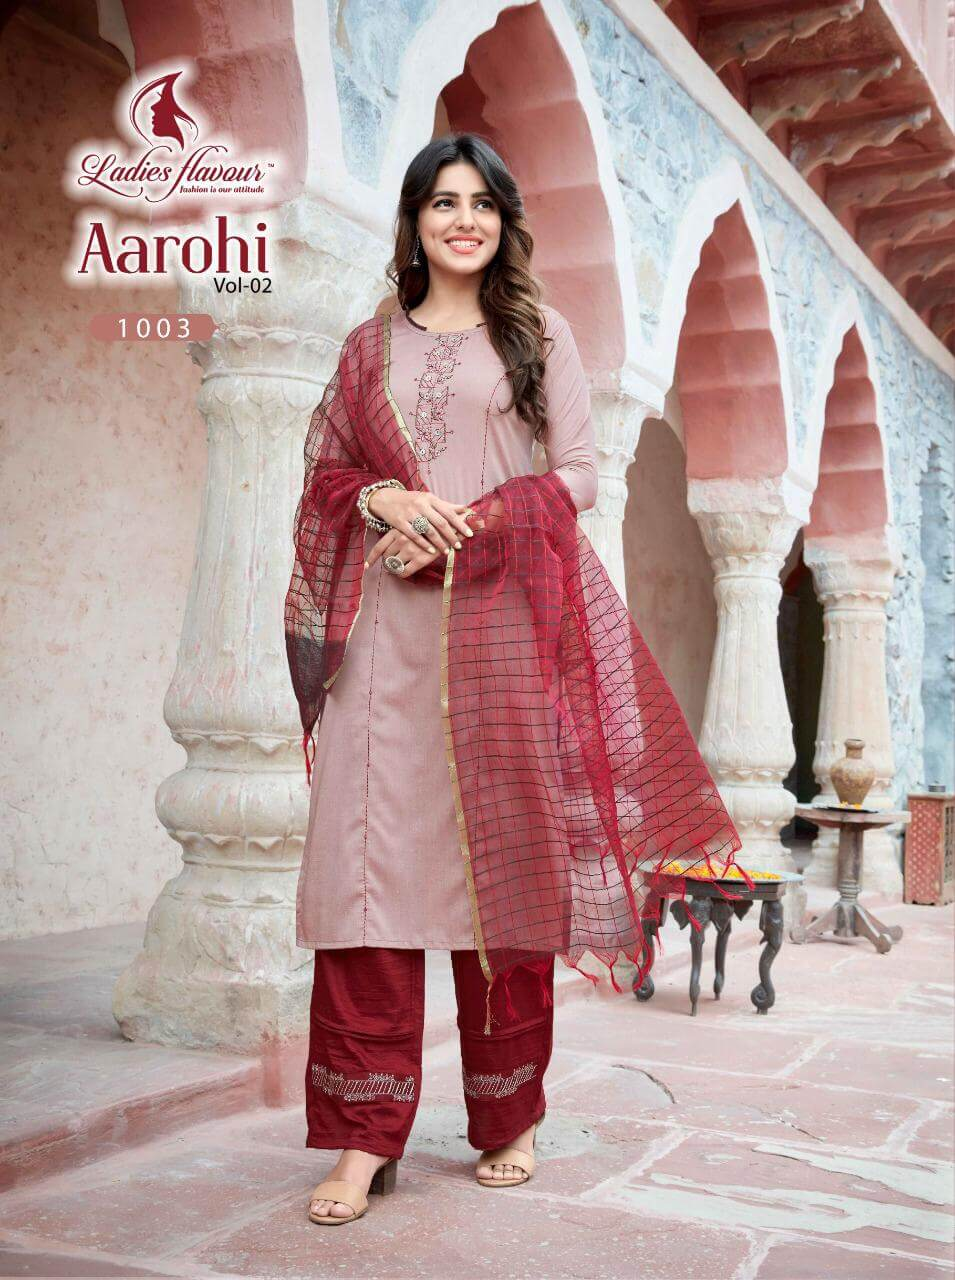 Ladies Flavour Aarohi Vol 2 collection 7